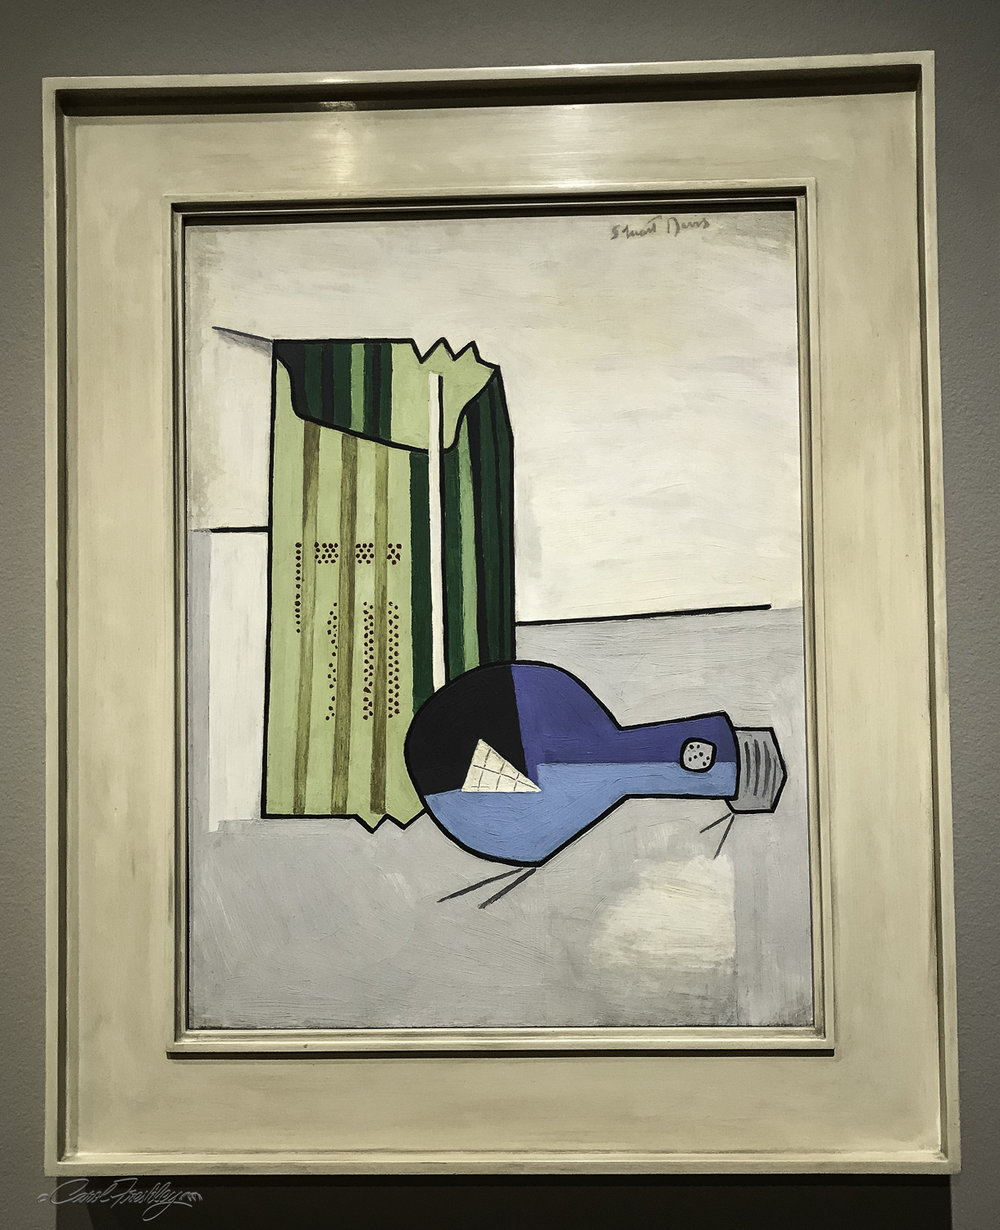 Electric Bulb , by Stuart Davis (1892-1964).  Davis was very interested in modern European art and spent decades investigating the many ways that French artists, in particular, simplified their compositions.  Here the artist used a modern item, for its time, and its protective wrapper to create a bouncy, almost cartoon-like image that is pushing the definition of abstraction.  It was noted that in 1924, the date this painting was created, 30% of American homes still did not have electricity.